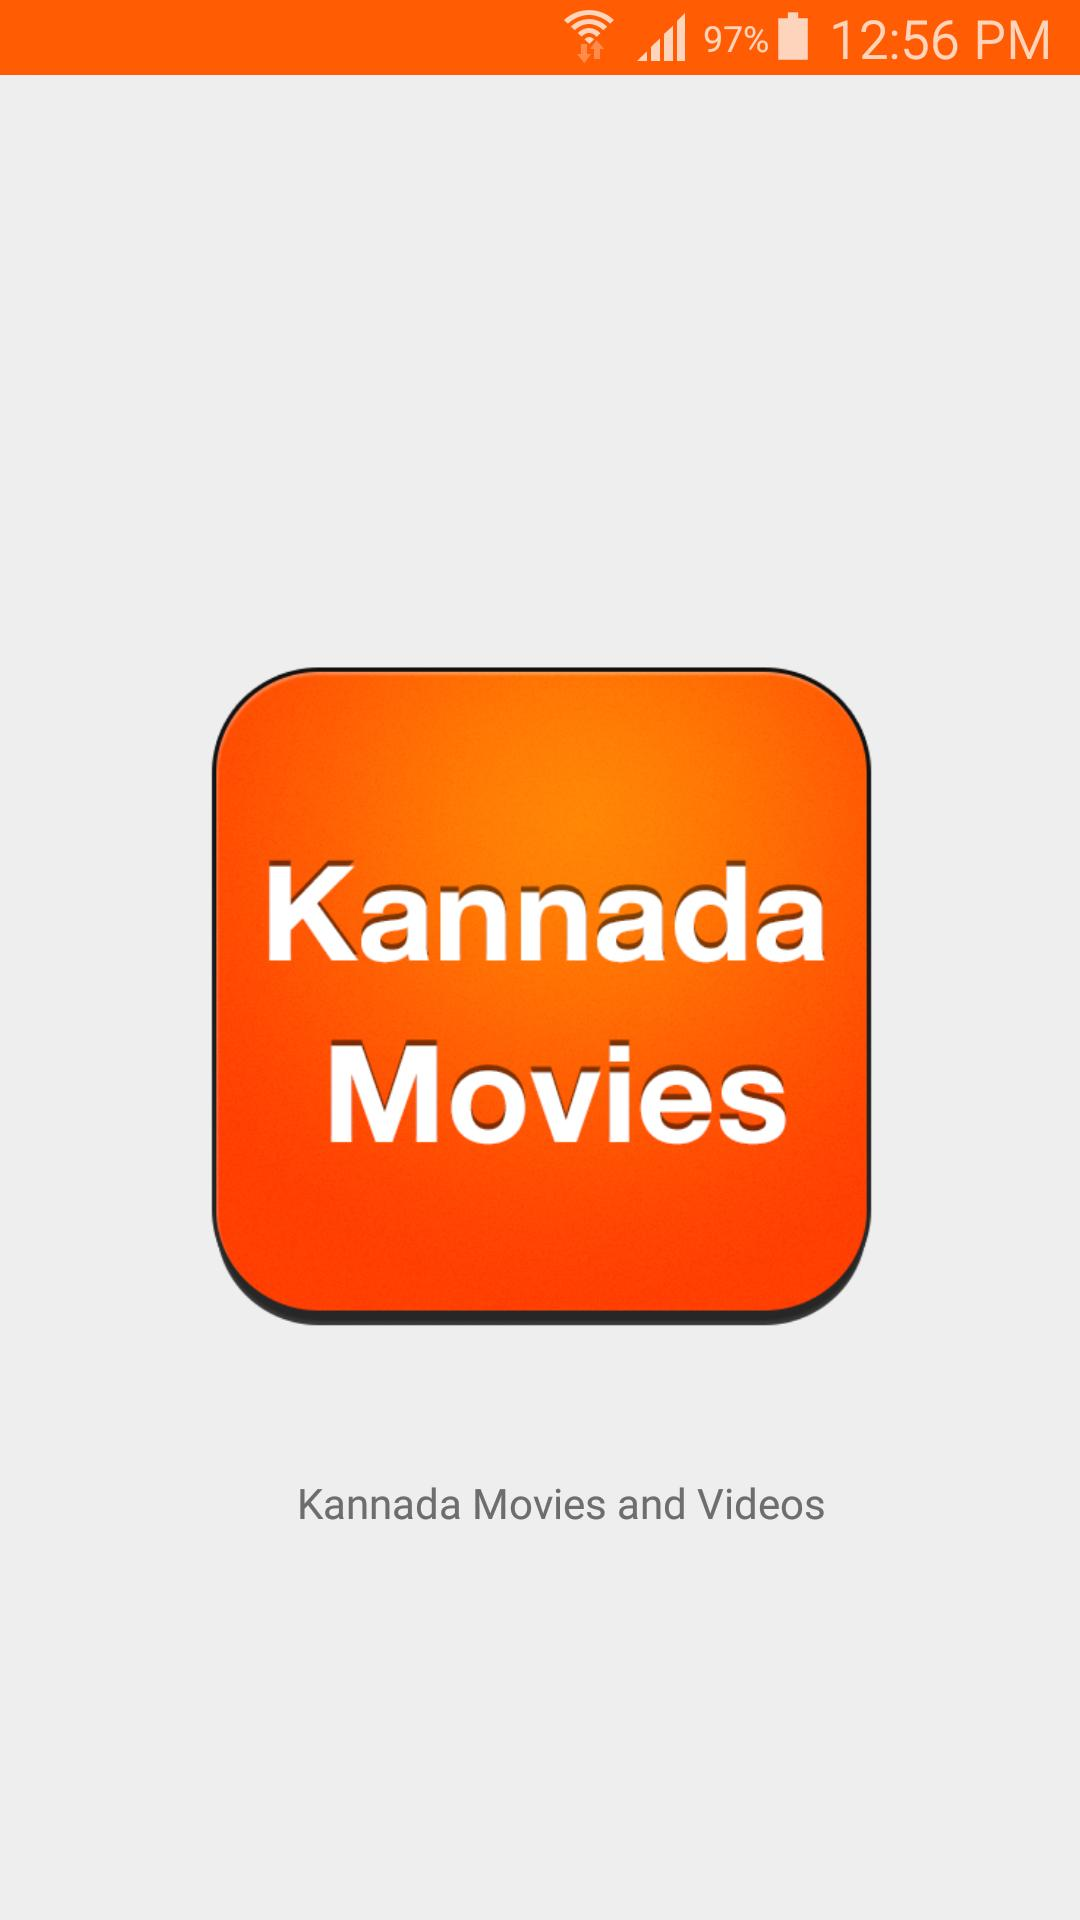 Kannada Movies List New Latest for Android - APK Download